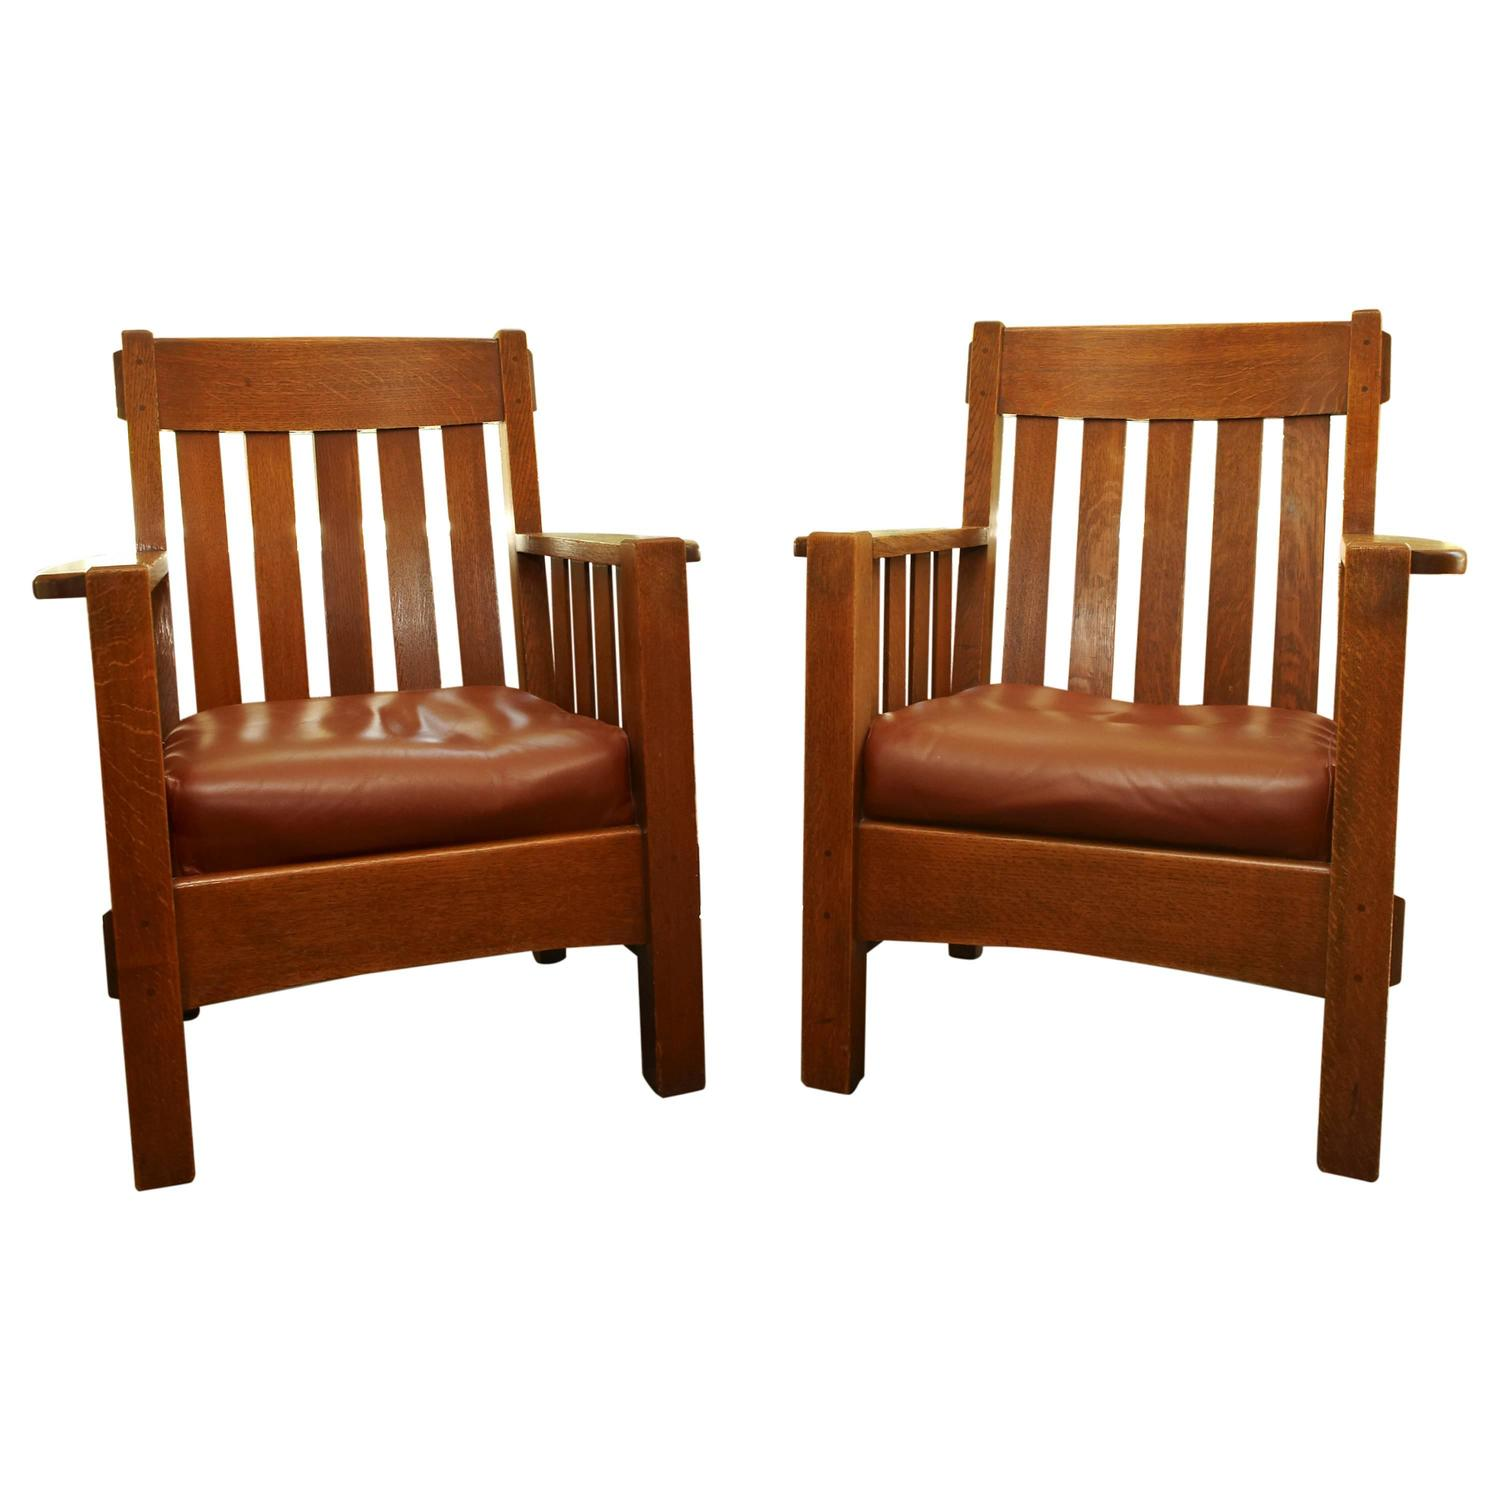 mission chairs for sale cheap wholesale chair covers pair harden arts and crafts armchairs circa 1907